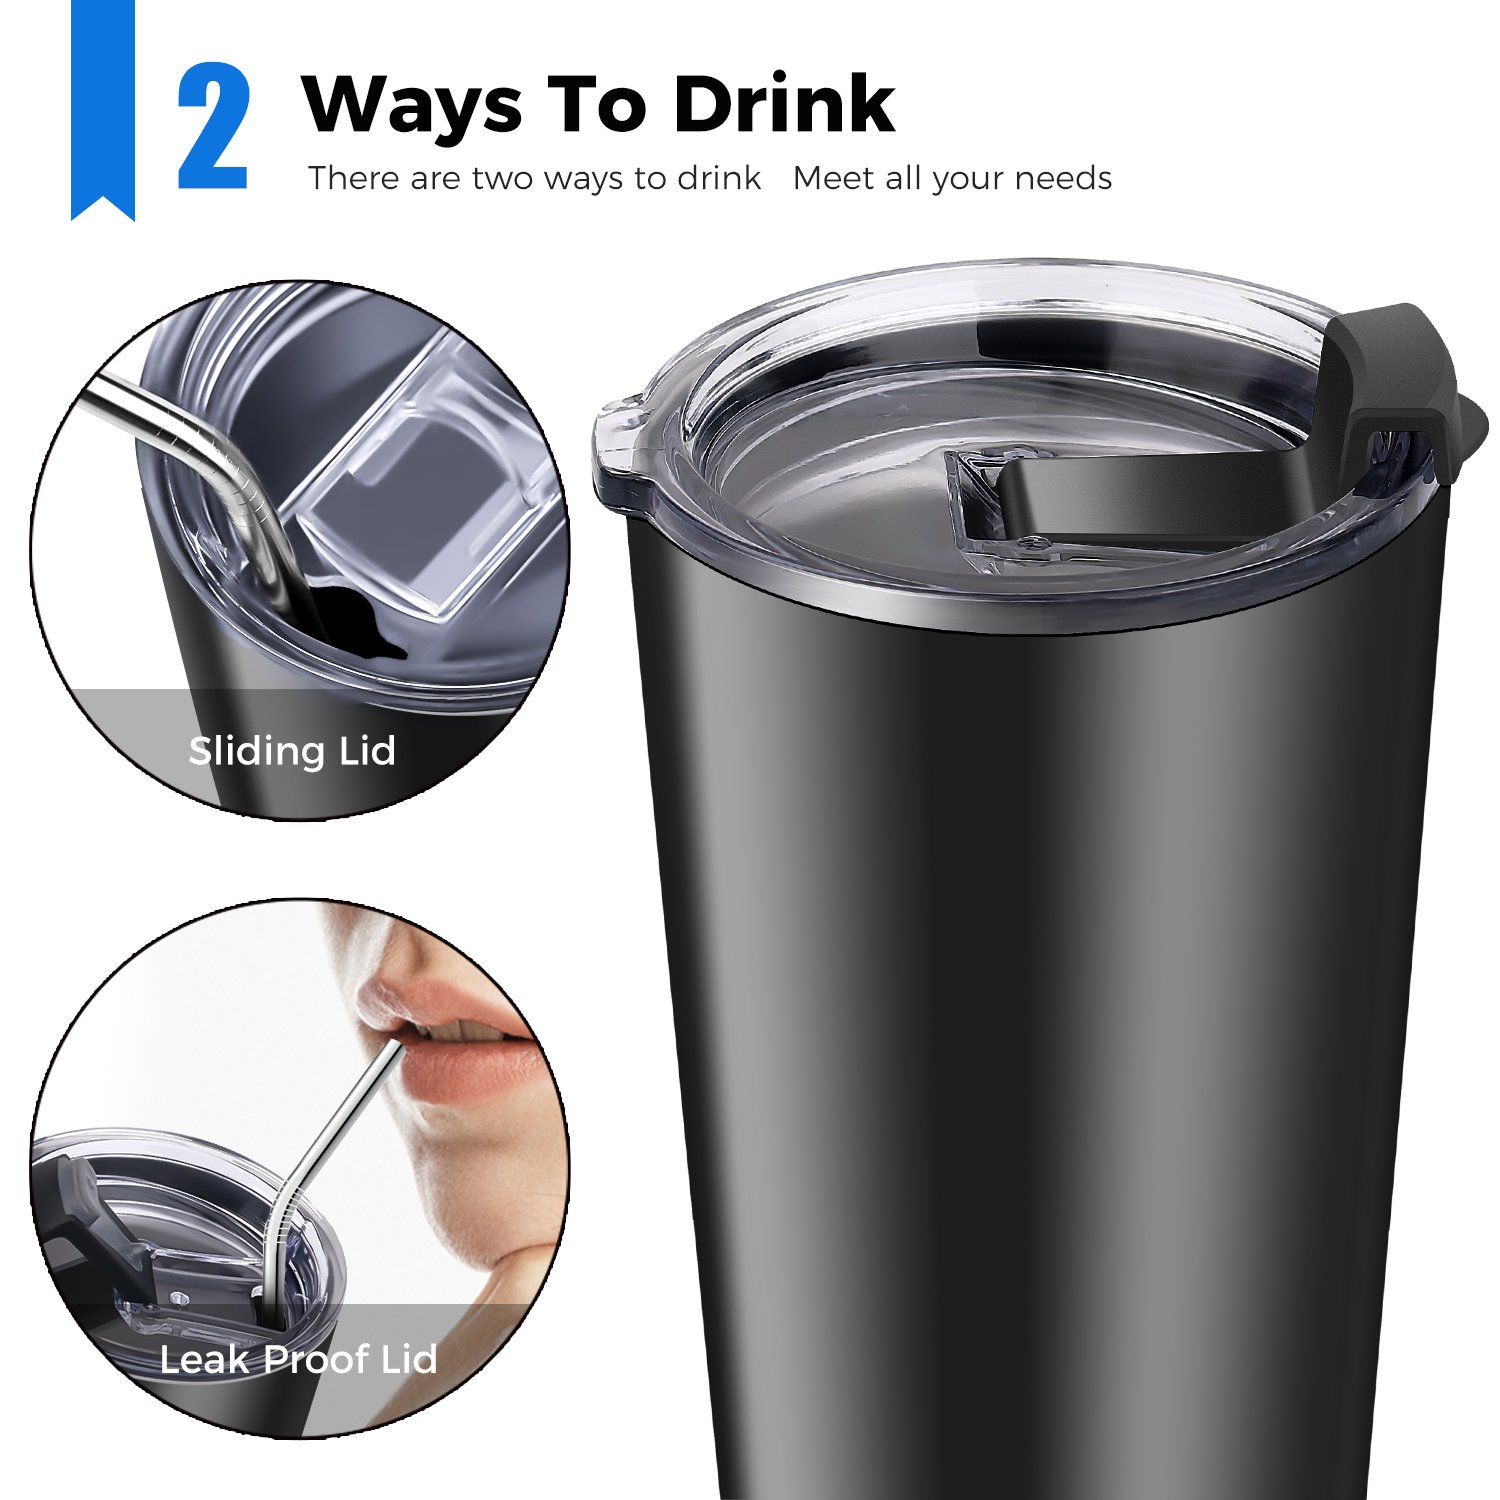 YH Black YAHEY Insulated Tumbler 20 Oz 18//8 Stainless Steel Travel Mug Keep Hot or Cold for Hours BPA Free Double Wall Vacuum Insulated Coffee Thermos with 2 Lids /& Reusable Straws